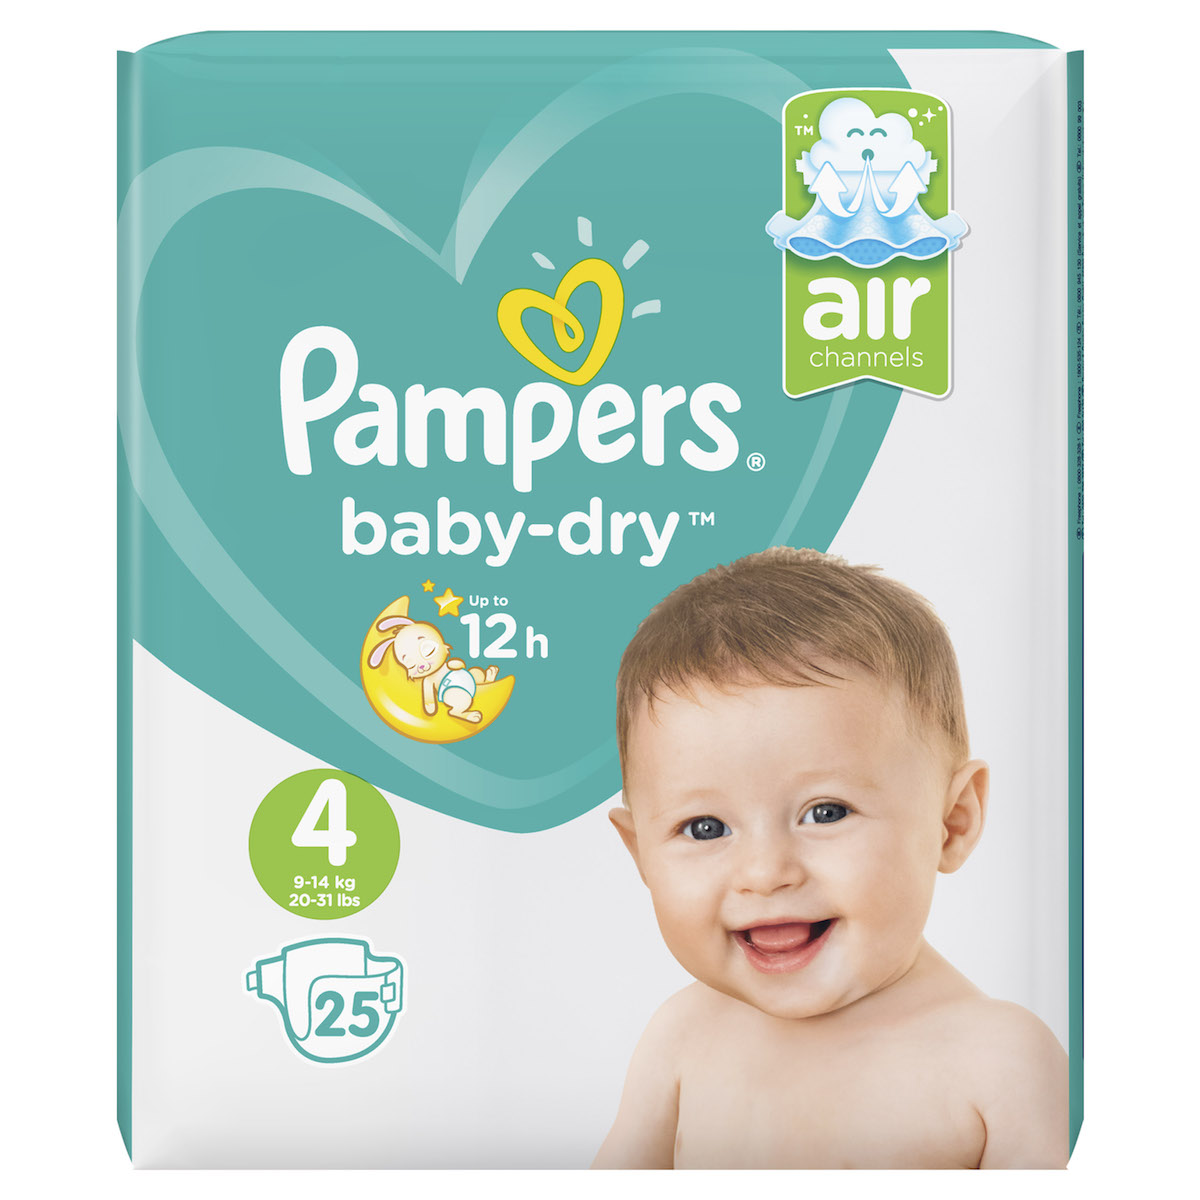 Pampers_Baby-Dry_Packshot